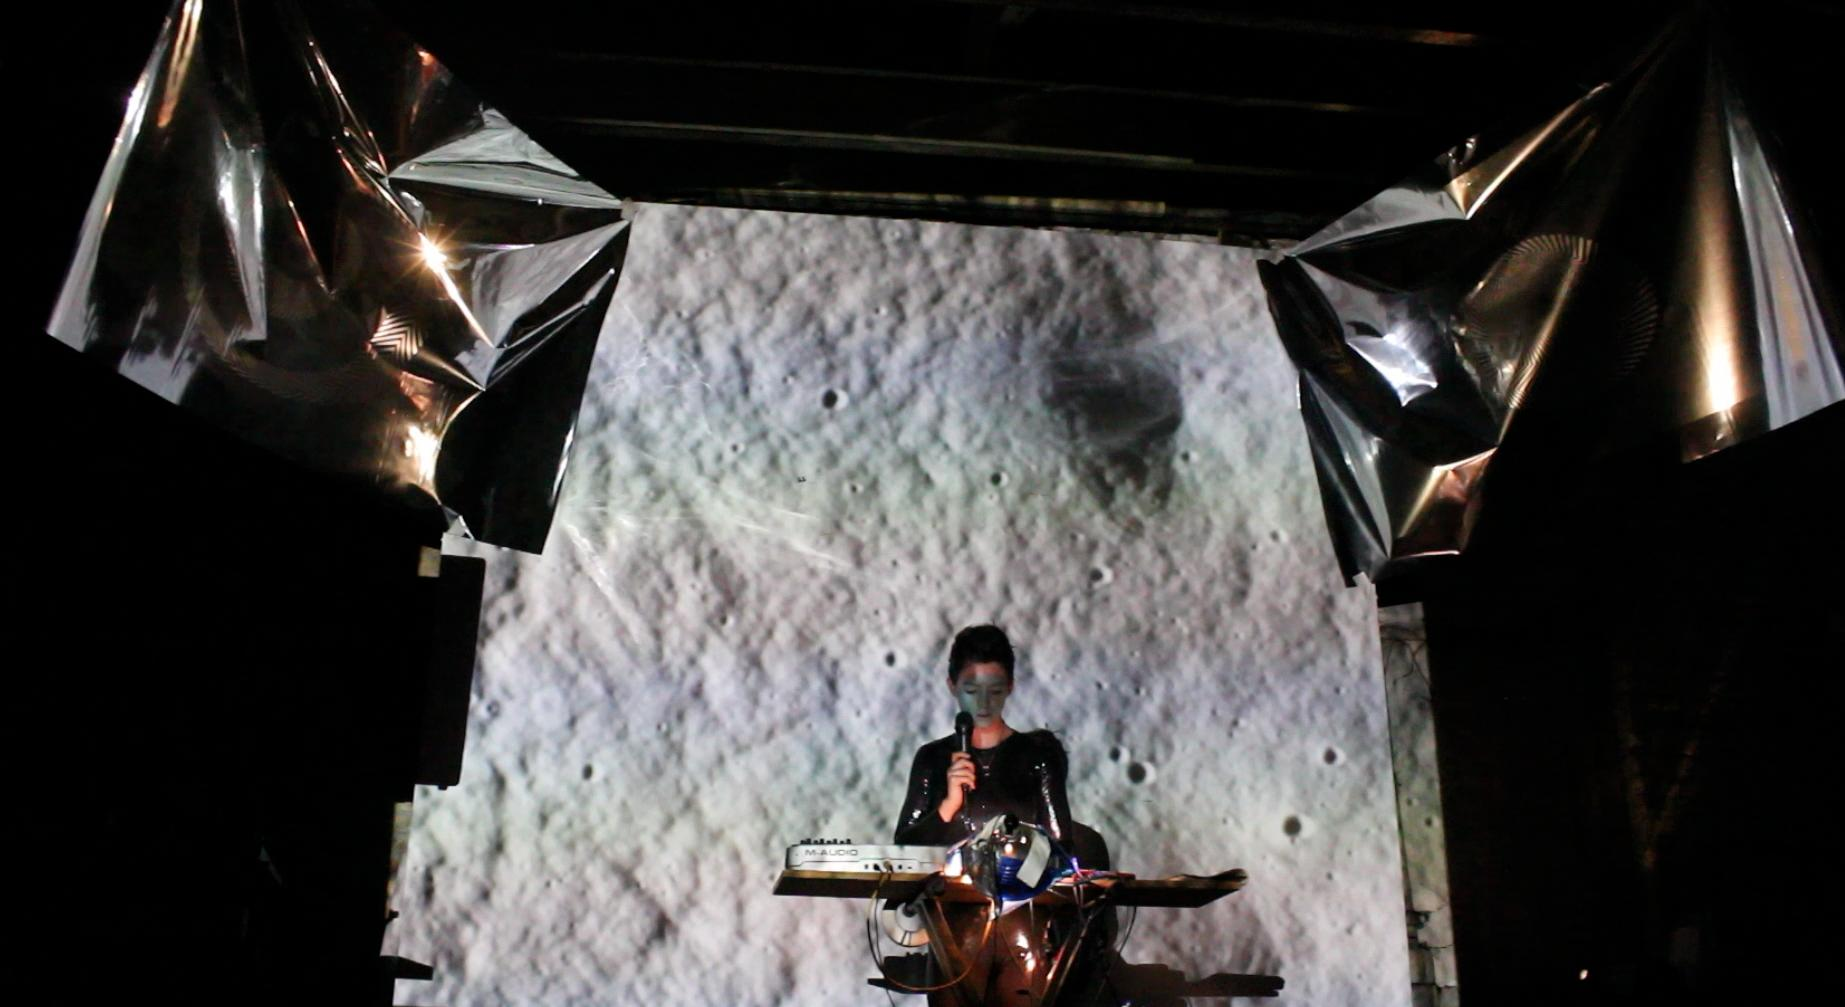 A person holding a microphone sits at an unusual desk with a large black-and-white backdrop that resembles the cratered surface of the moon. Two crinkled metallic sheets are suspended above.